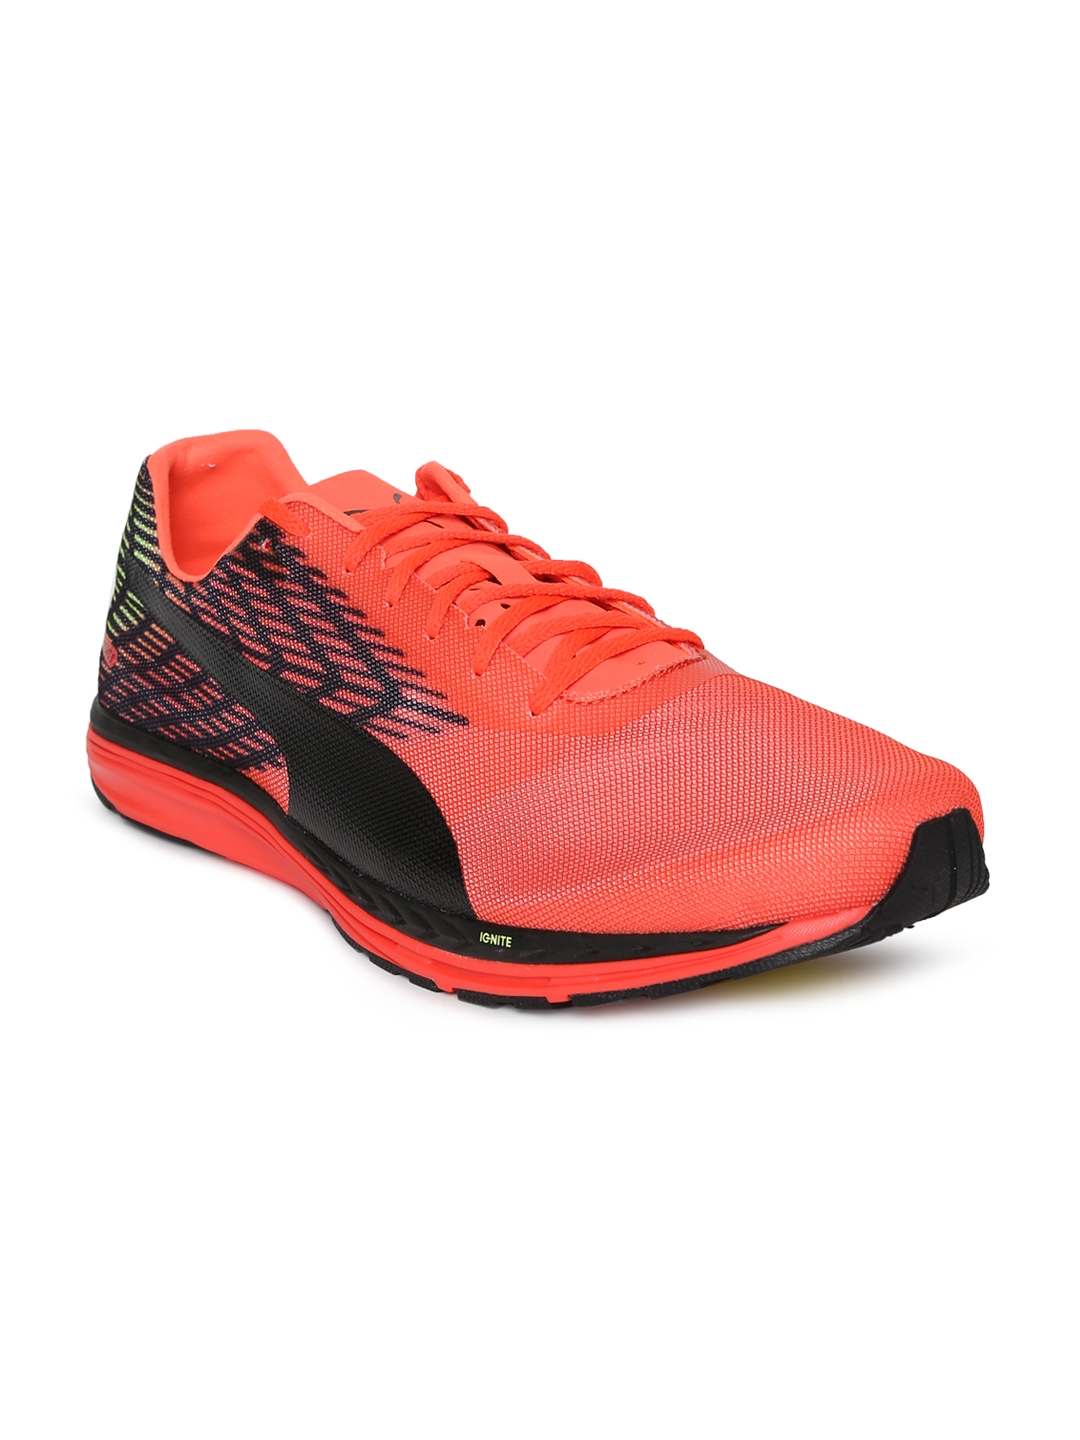 906db6e6b034 Buy Puma Men Speed 100 R IGNITE 2 Running Shoes - Sports Shoes for ...